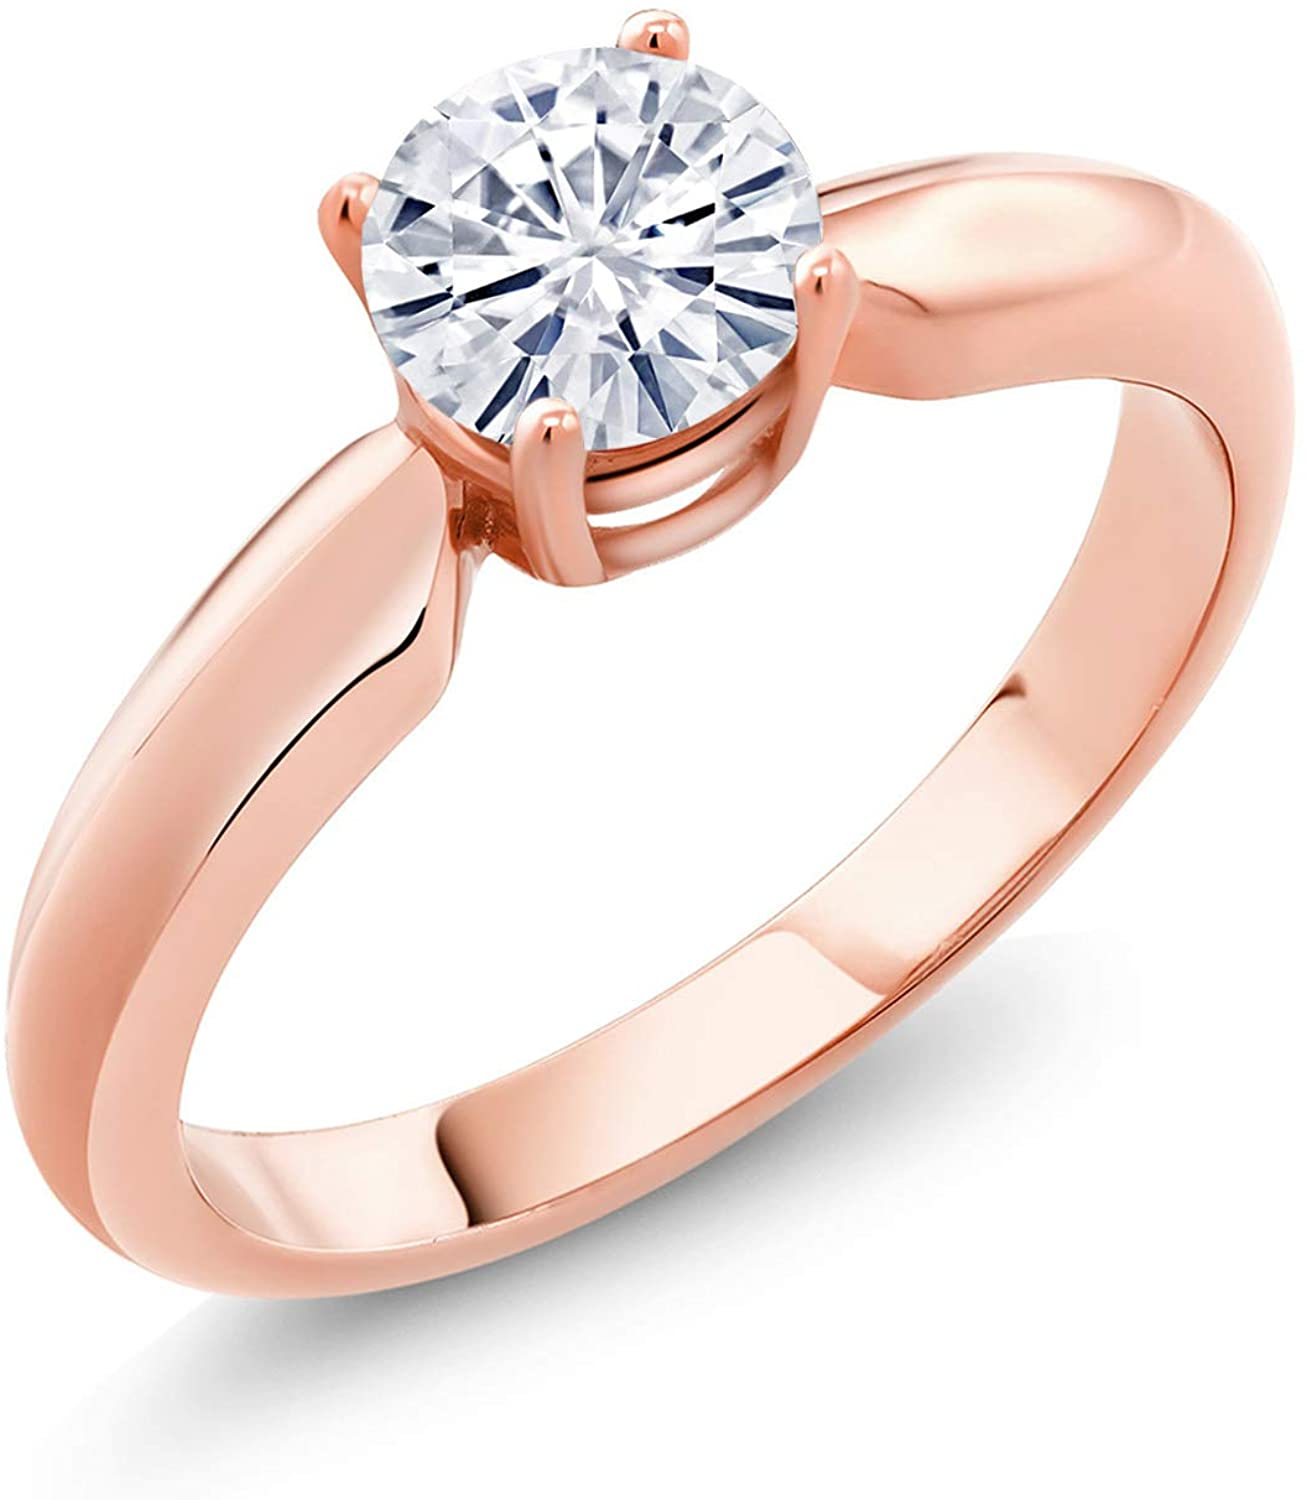 18K Rose Gold Plated Silver Solitaire Ring Set Round Forever Brilliant Near Colorless (GHI) 0.50 ct (DEW) Created Moissanite from Charles & Colvard